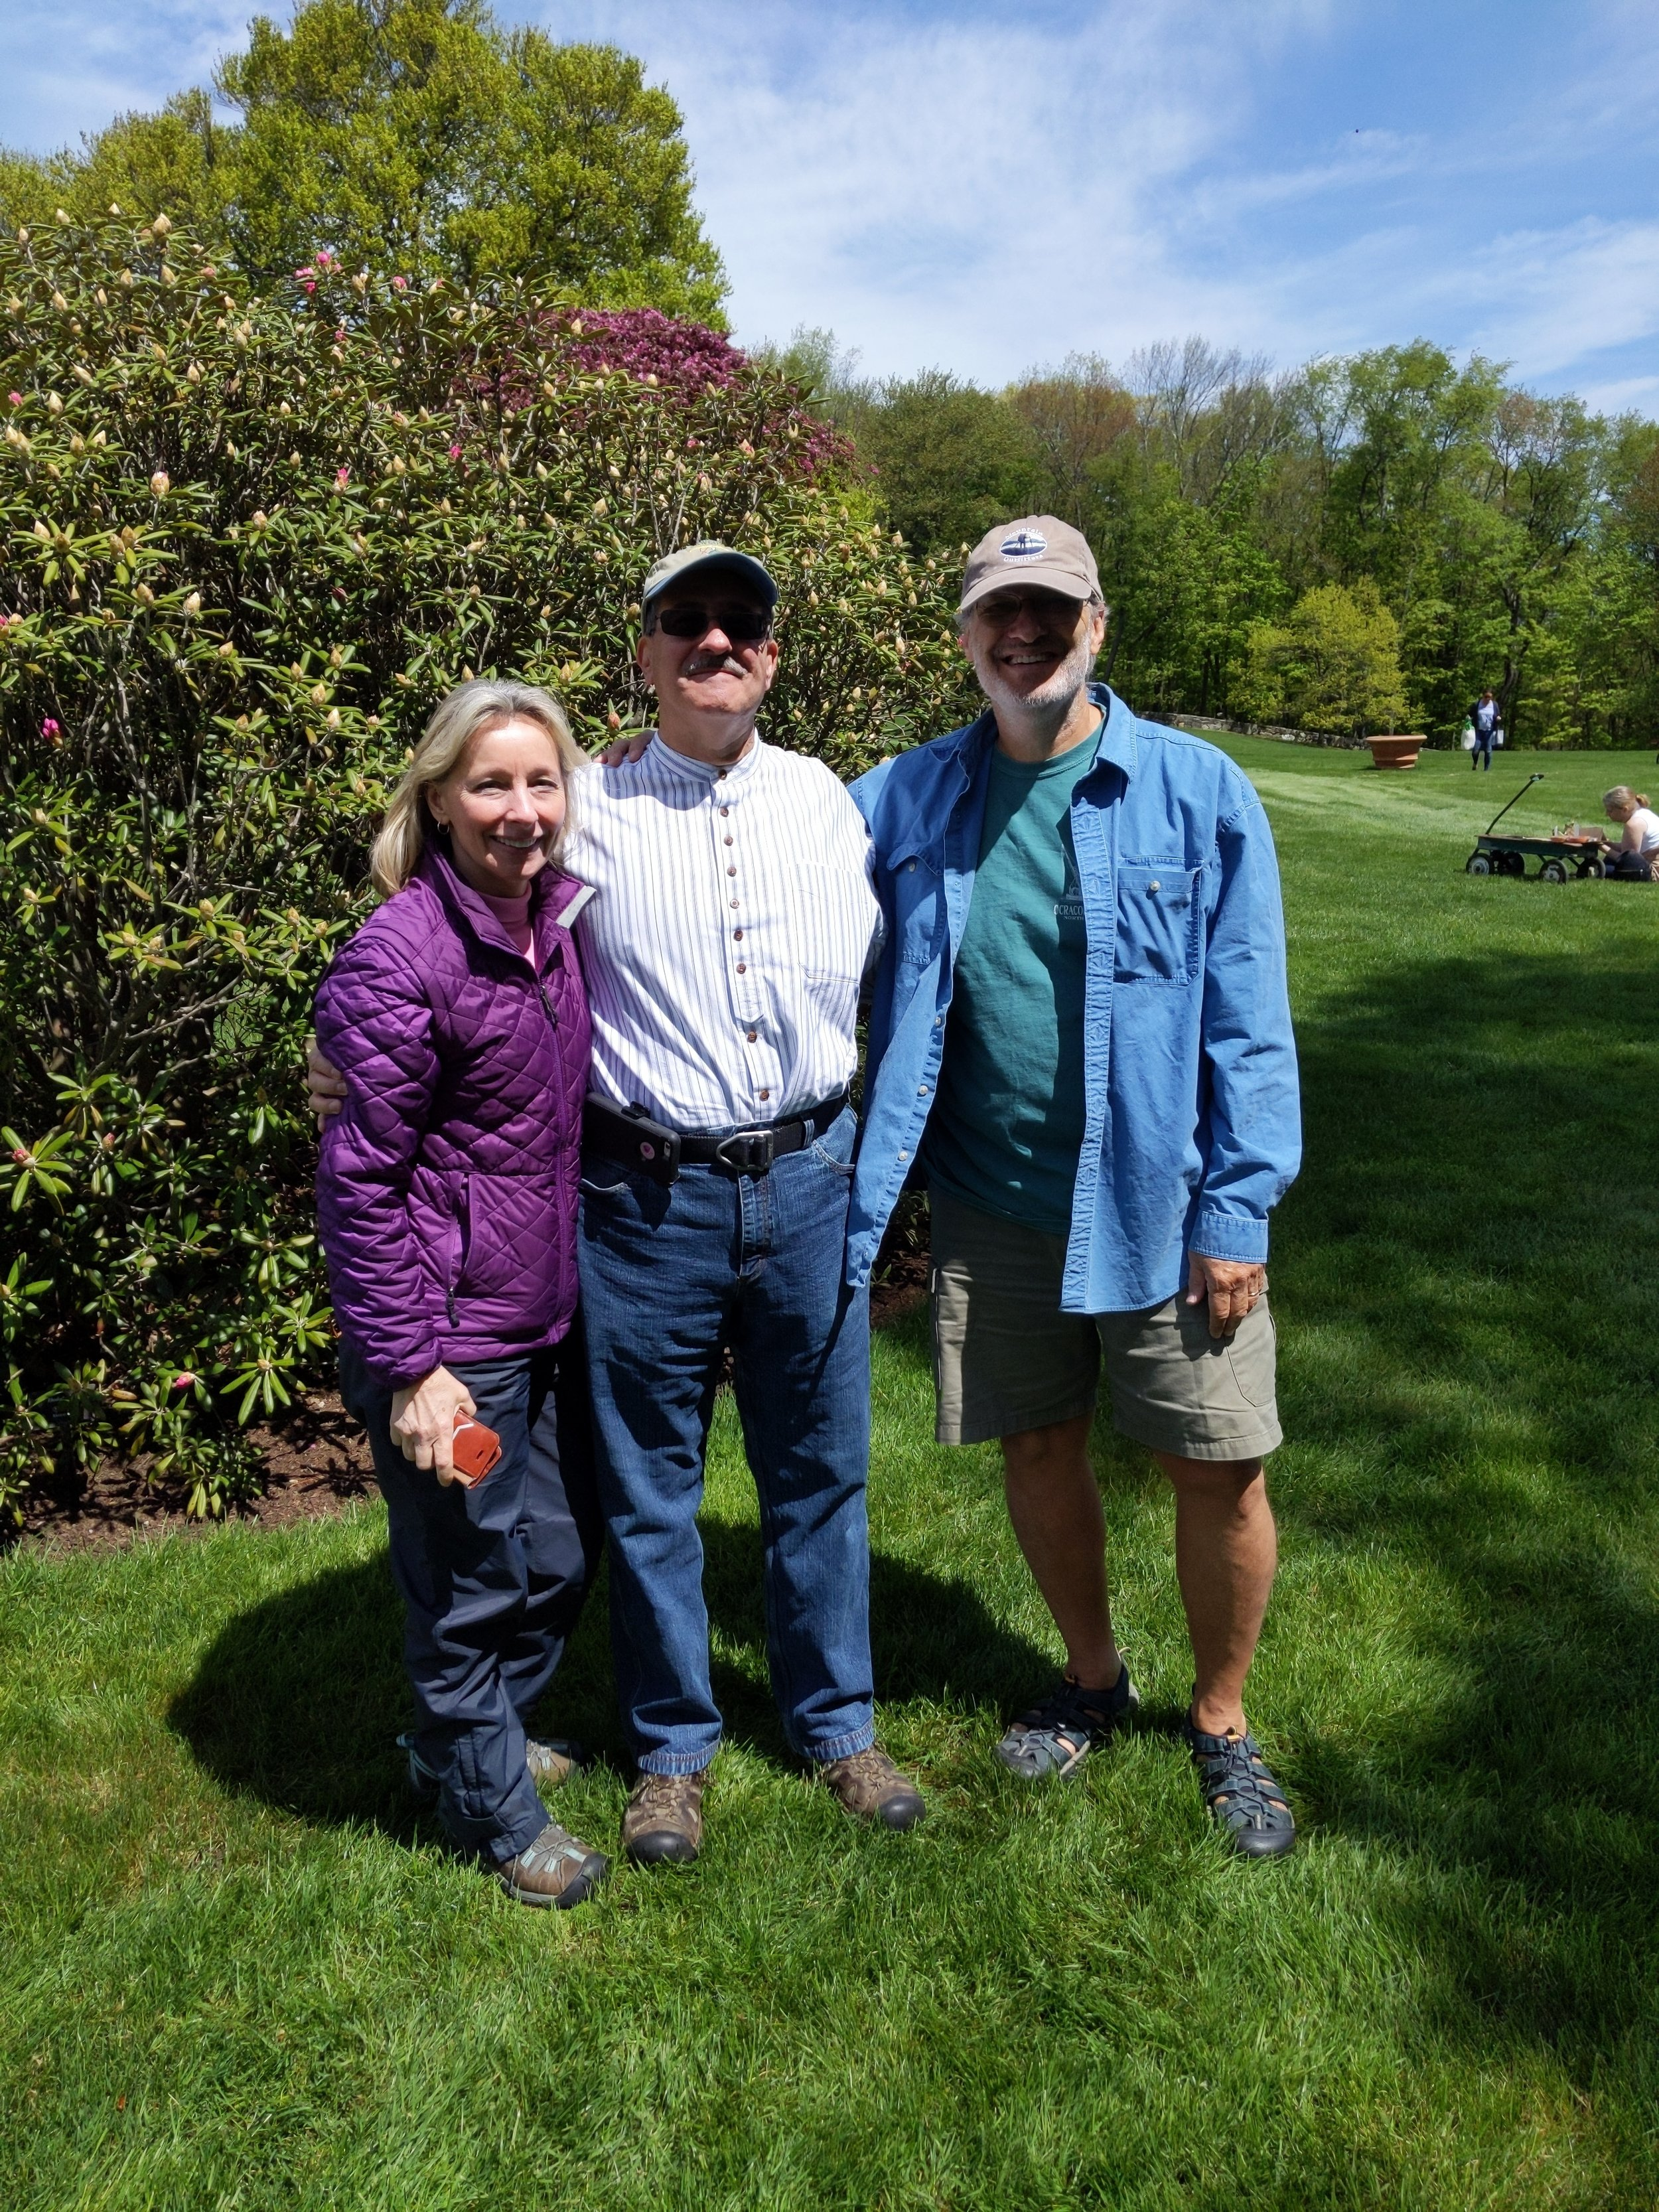 A most amazing chance encounter - Sue and Walt Swokla and I, with so many connections we weren't aware of prior to this meeting